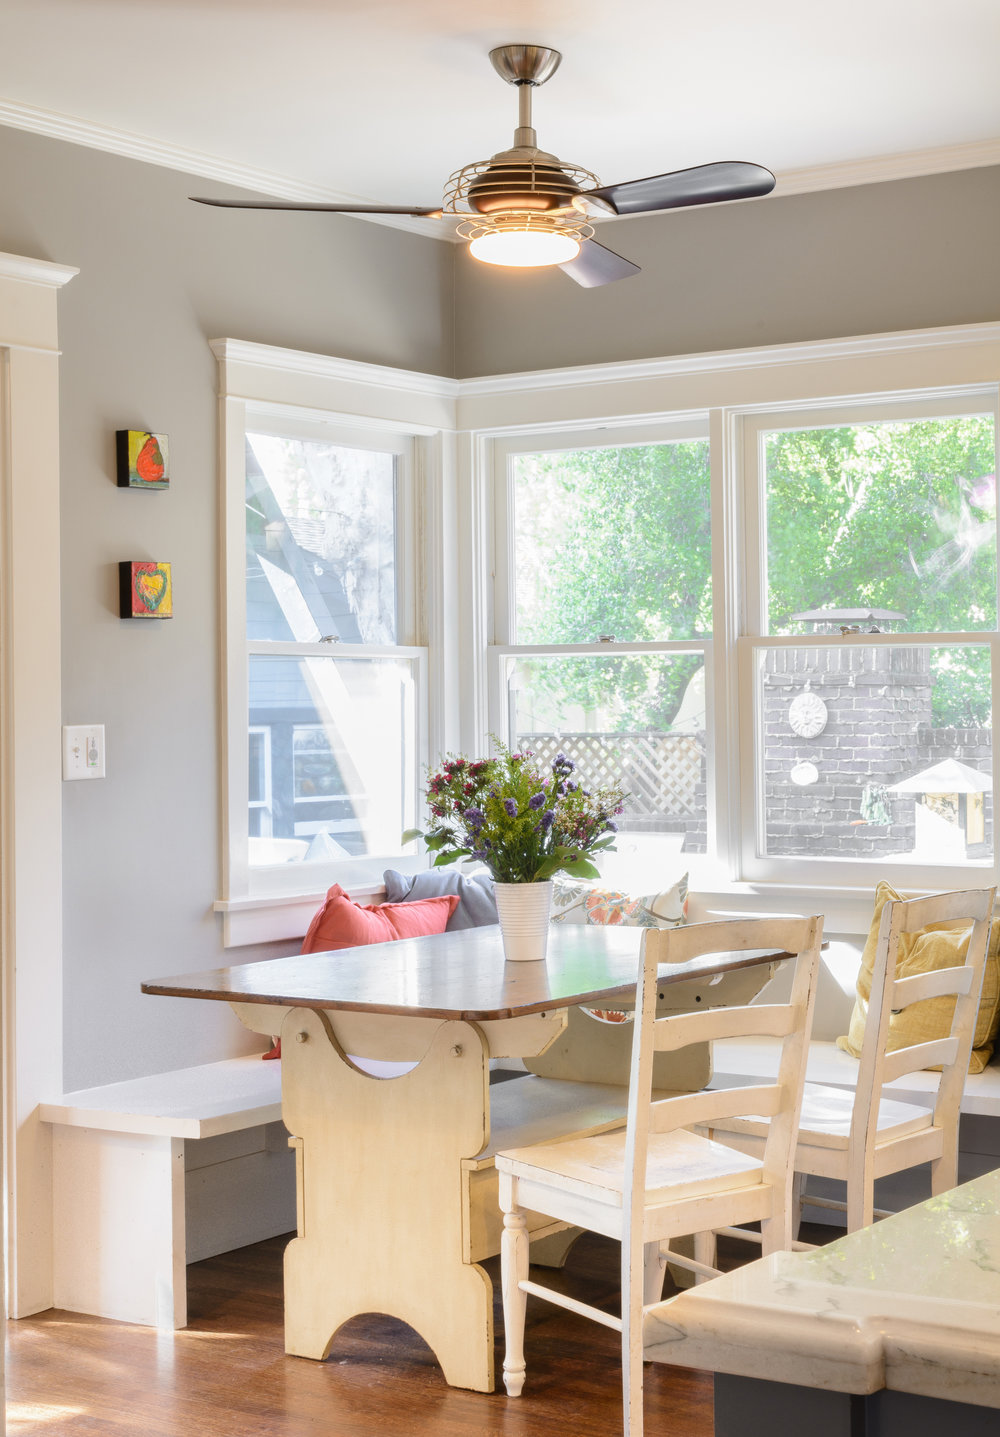 This perfect craftsman style breakfast nook provides a warm welcome thanks to plenty of natural light, white benches, distressed chairs, and a white table base with a wood top